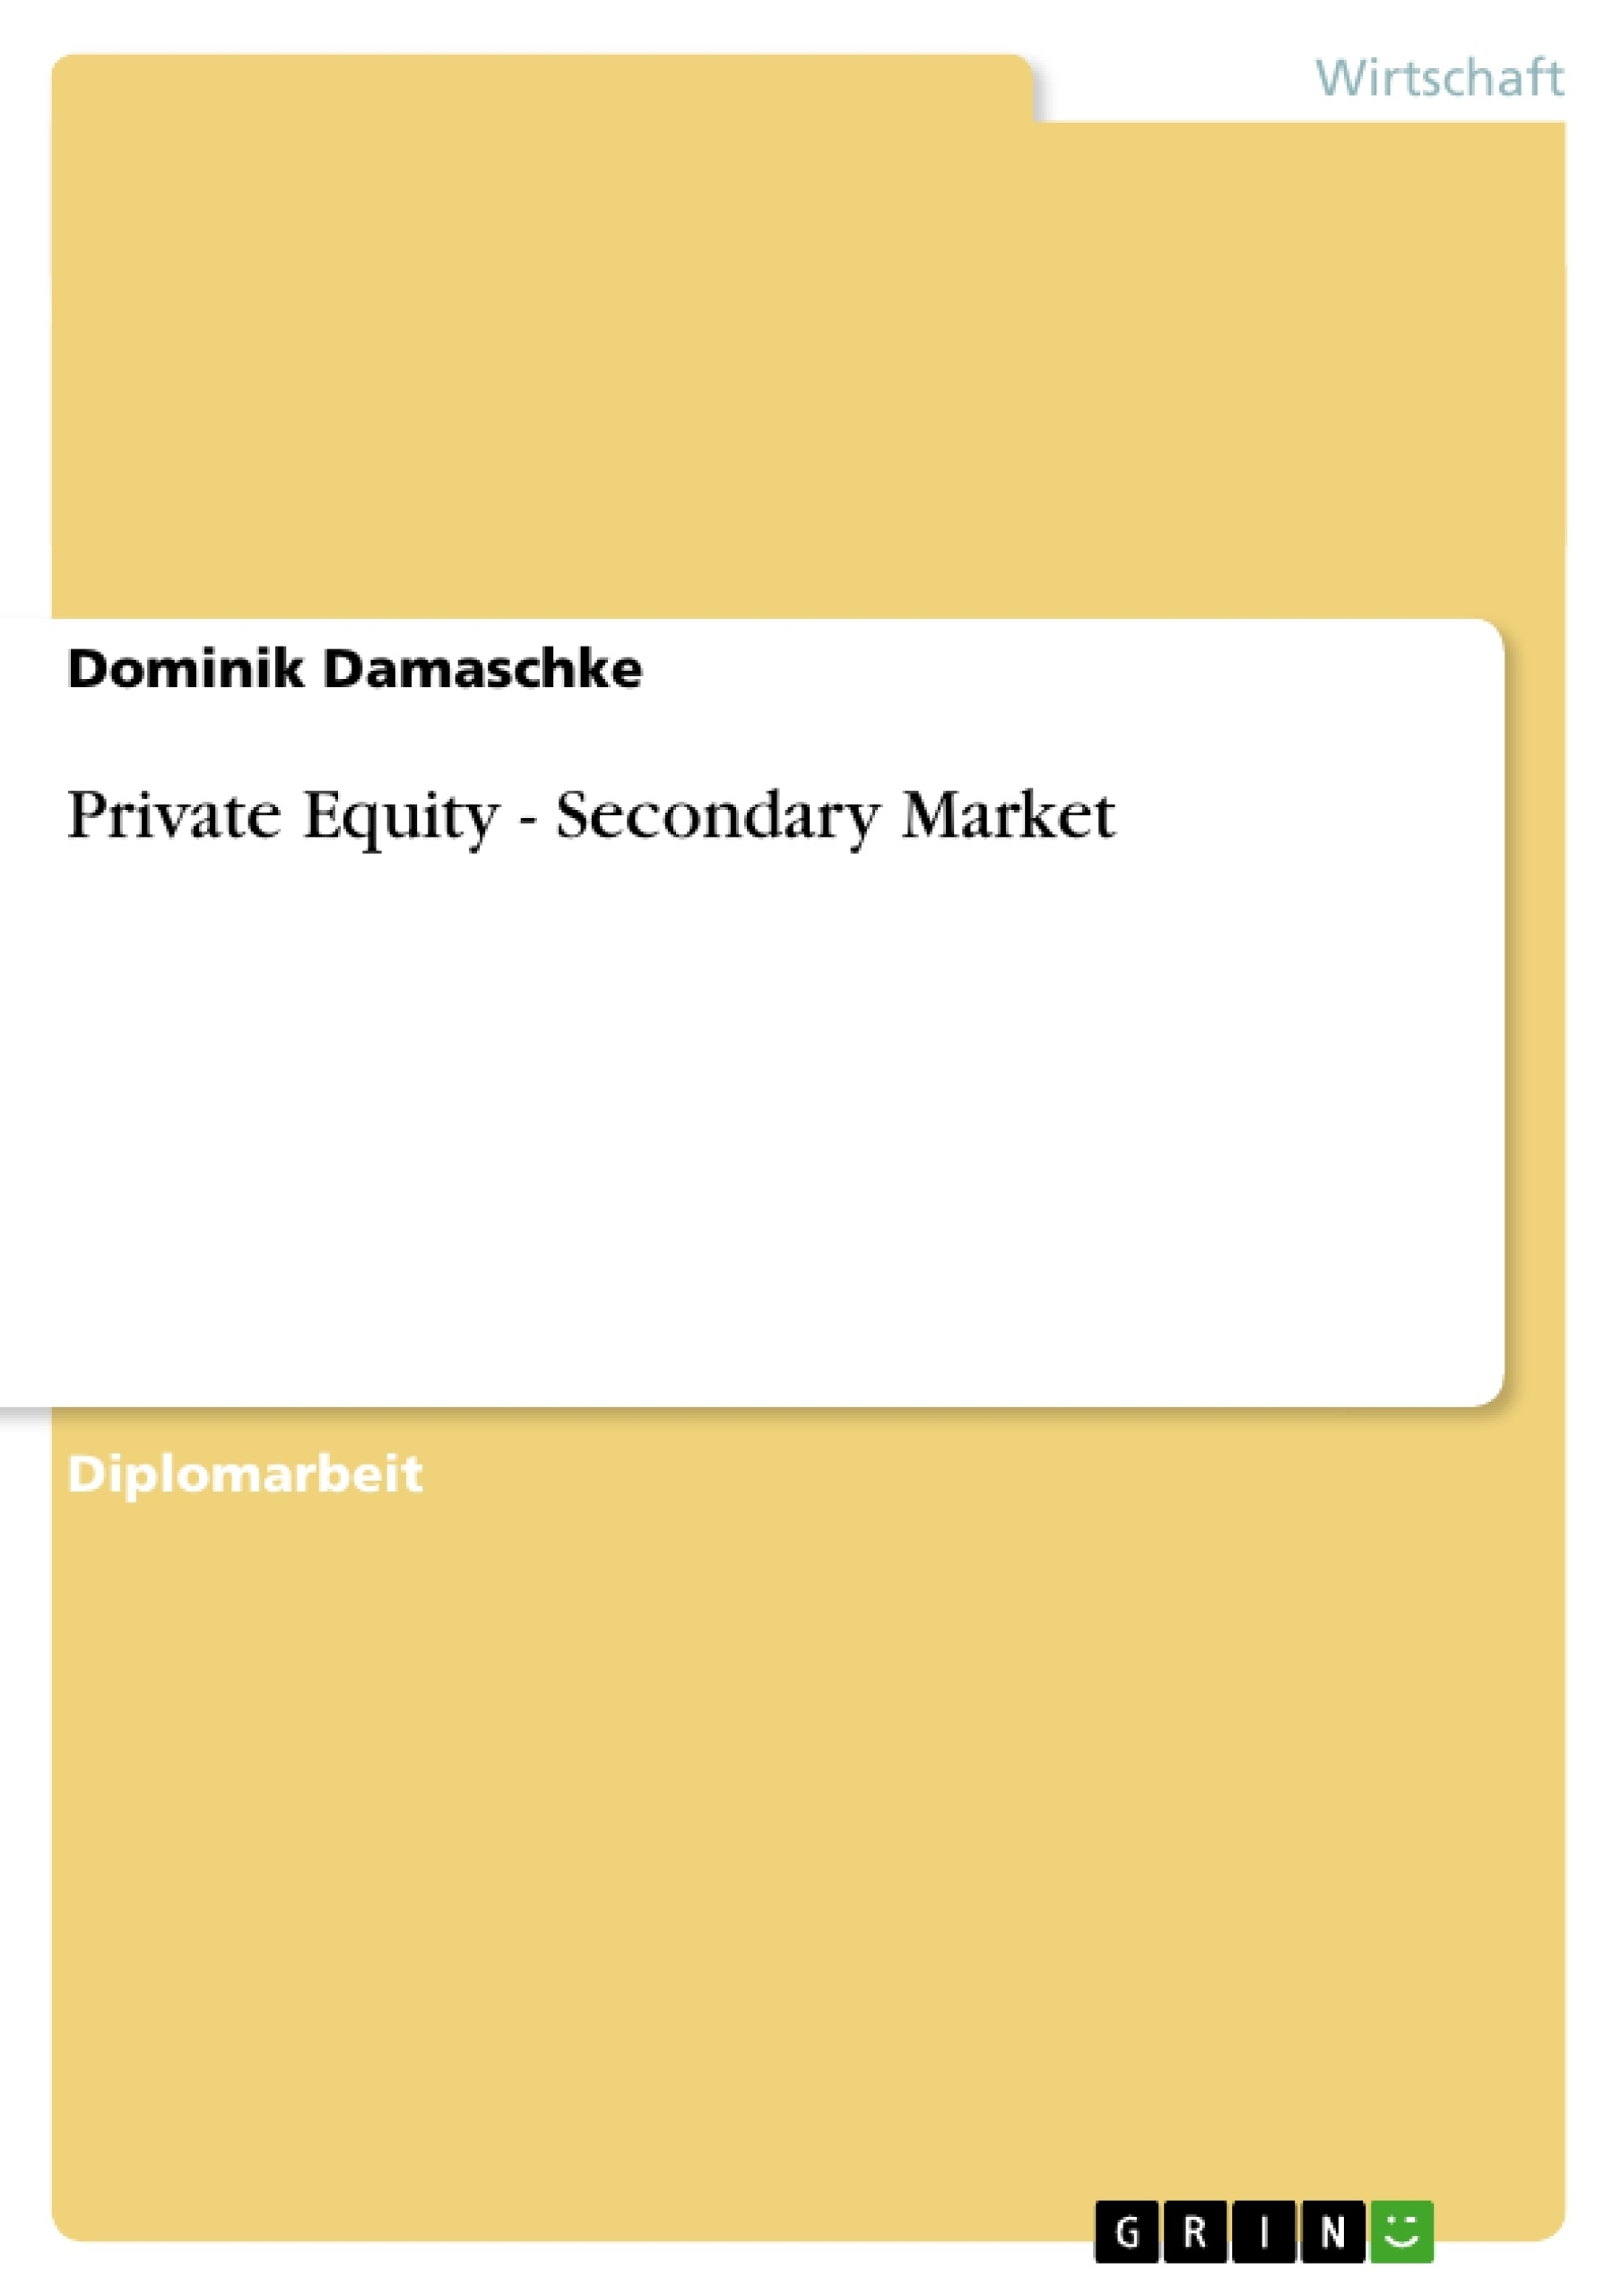 Titel: Private Equity - Secondary Market